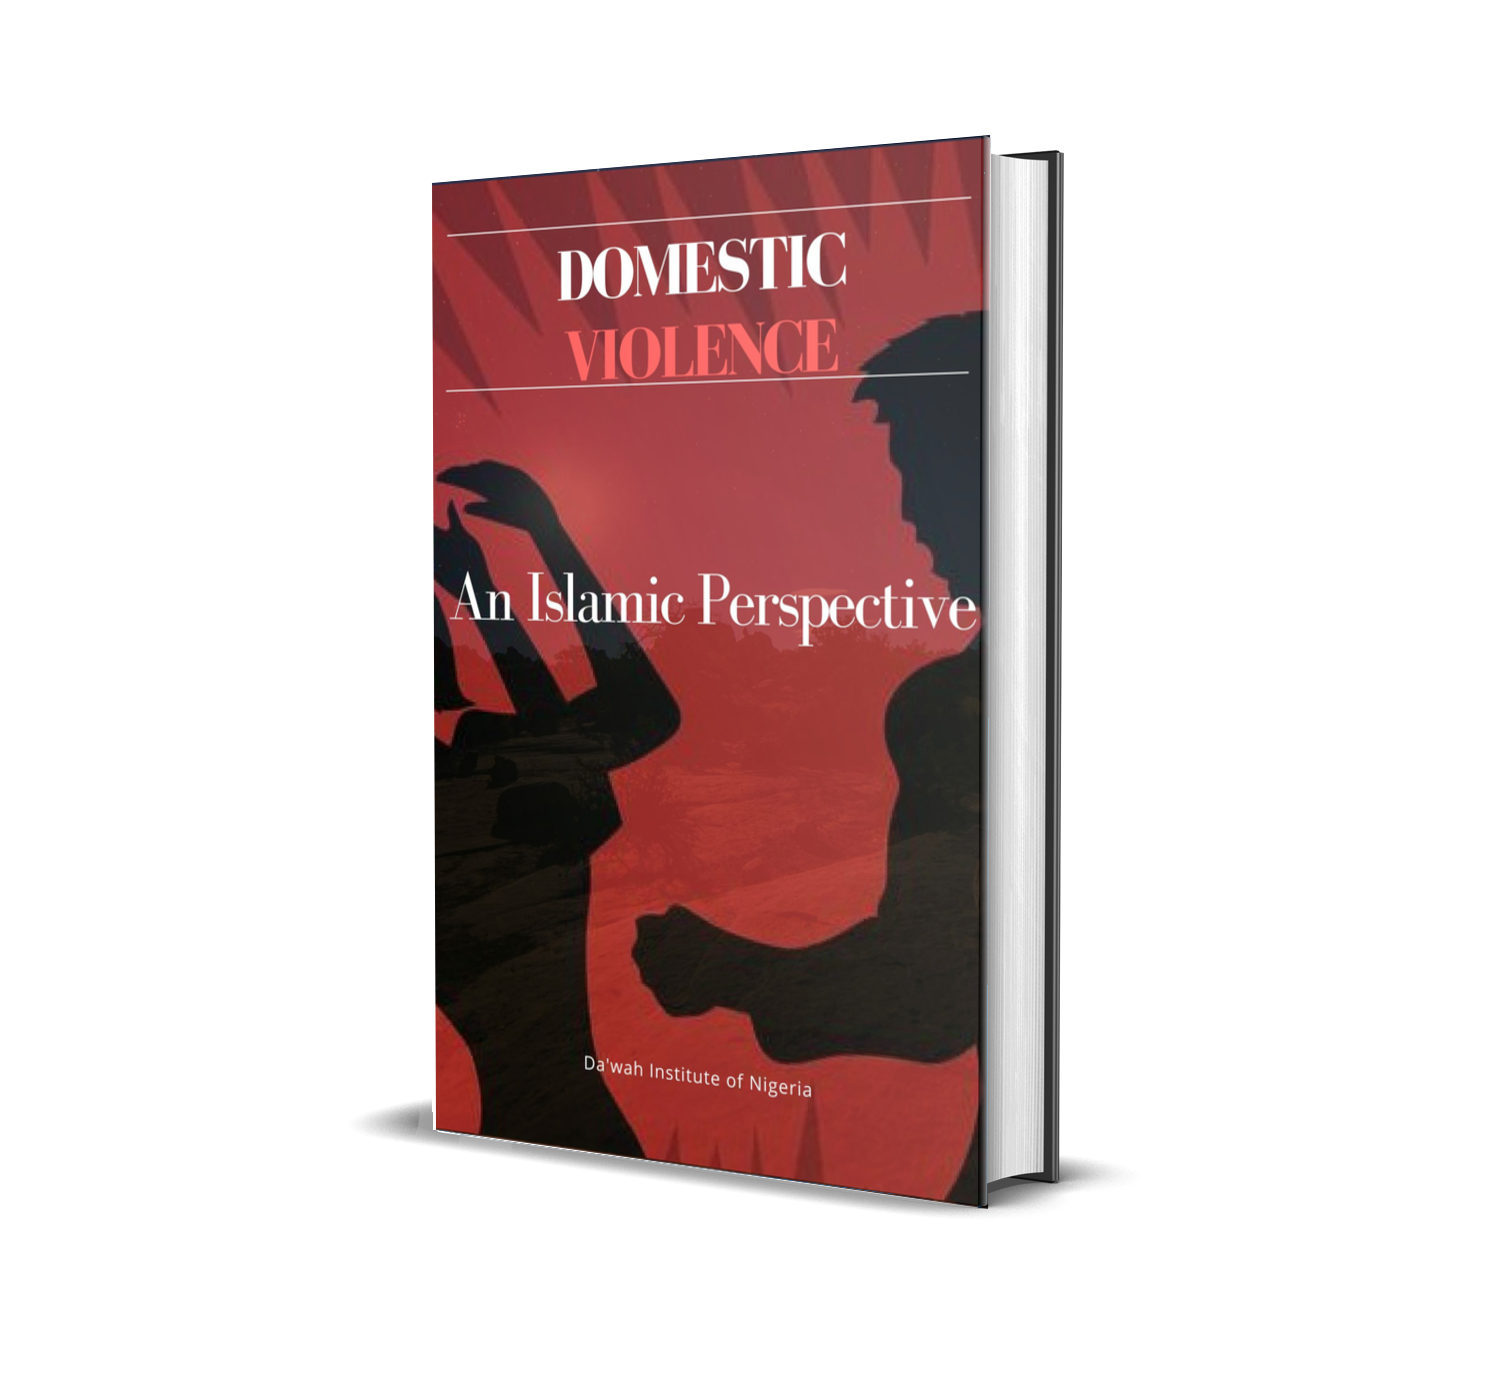 https://dawahinstitute.org/wp-content/uploads/Domestic-violence.png